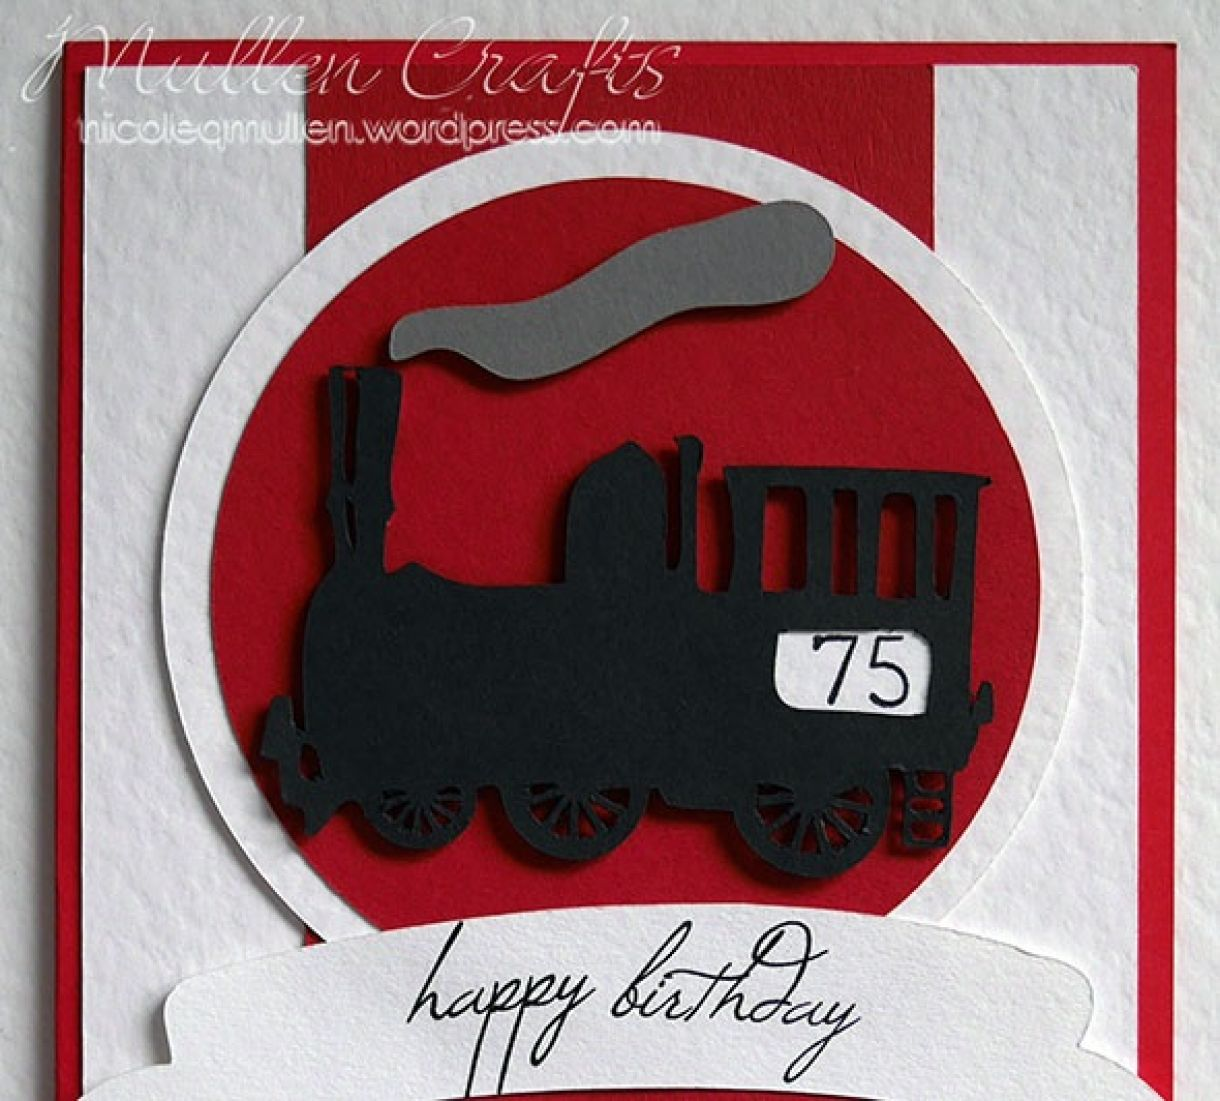 Train Bday Card Nicole 2